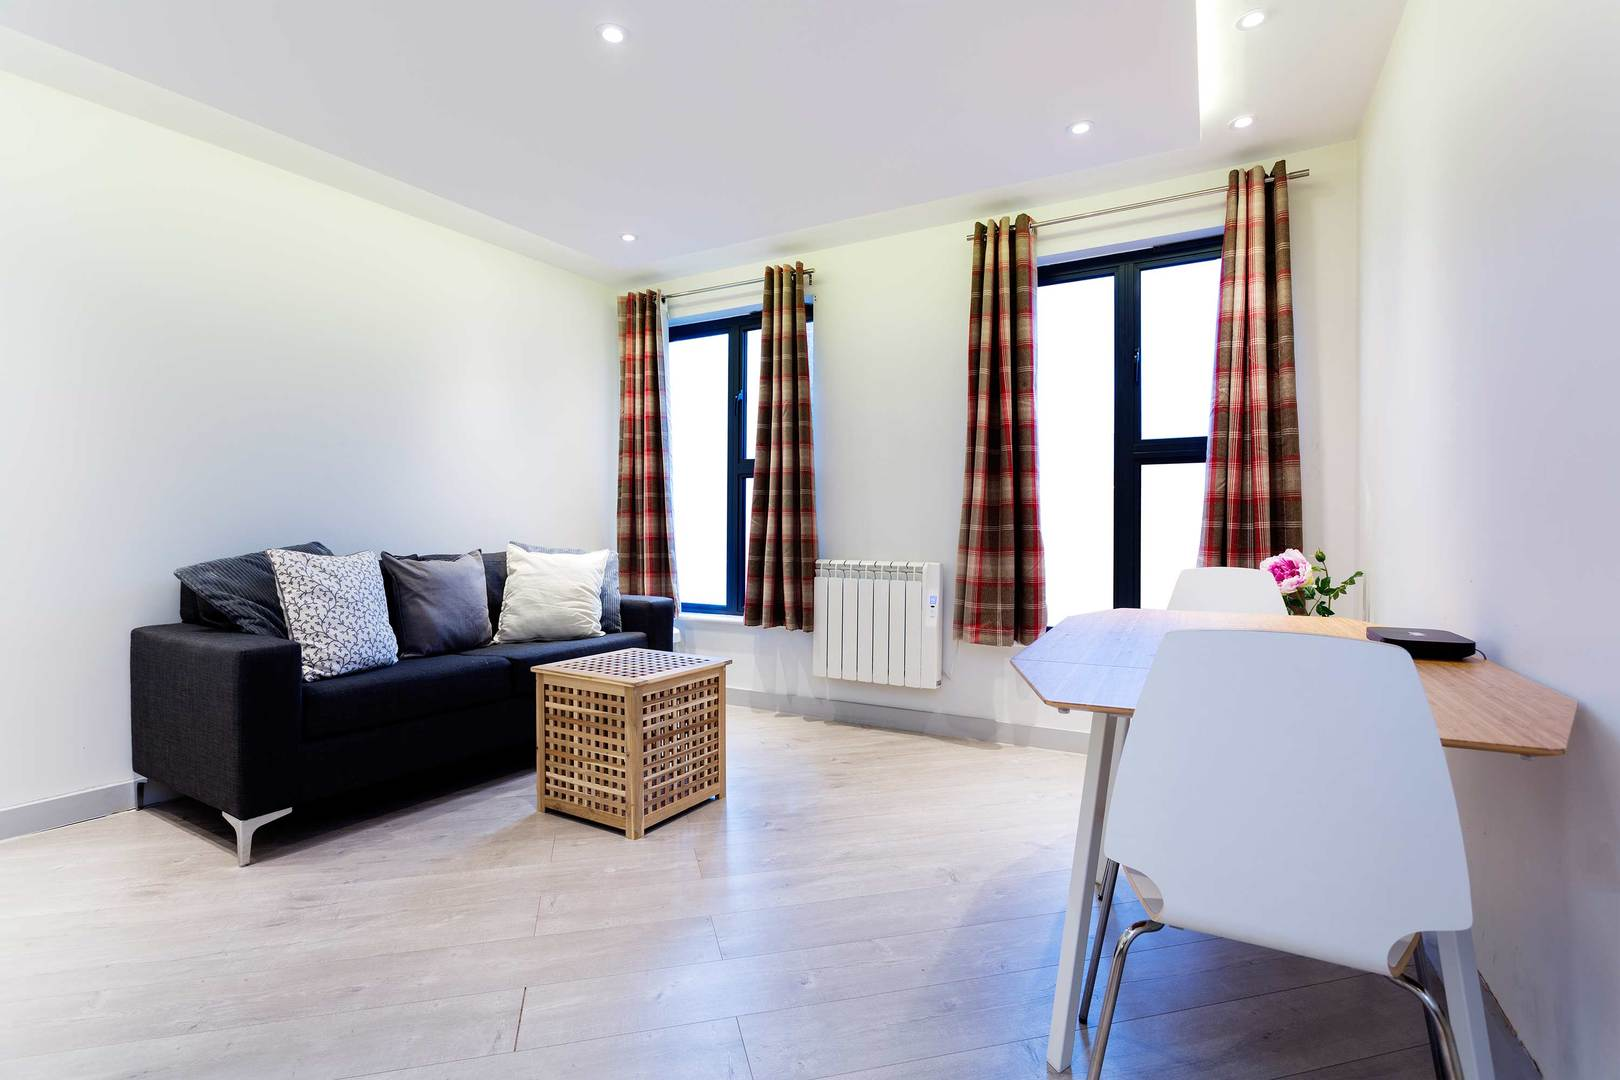 Contemporary mile end 1 bed apartment in stepney green • veeve